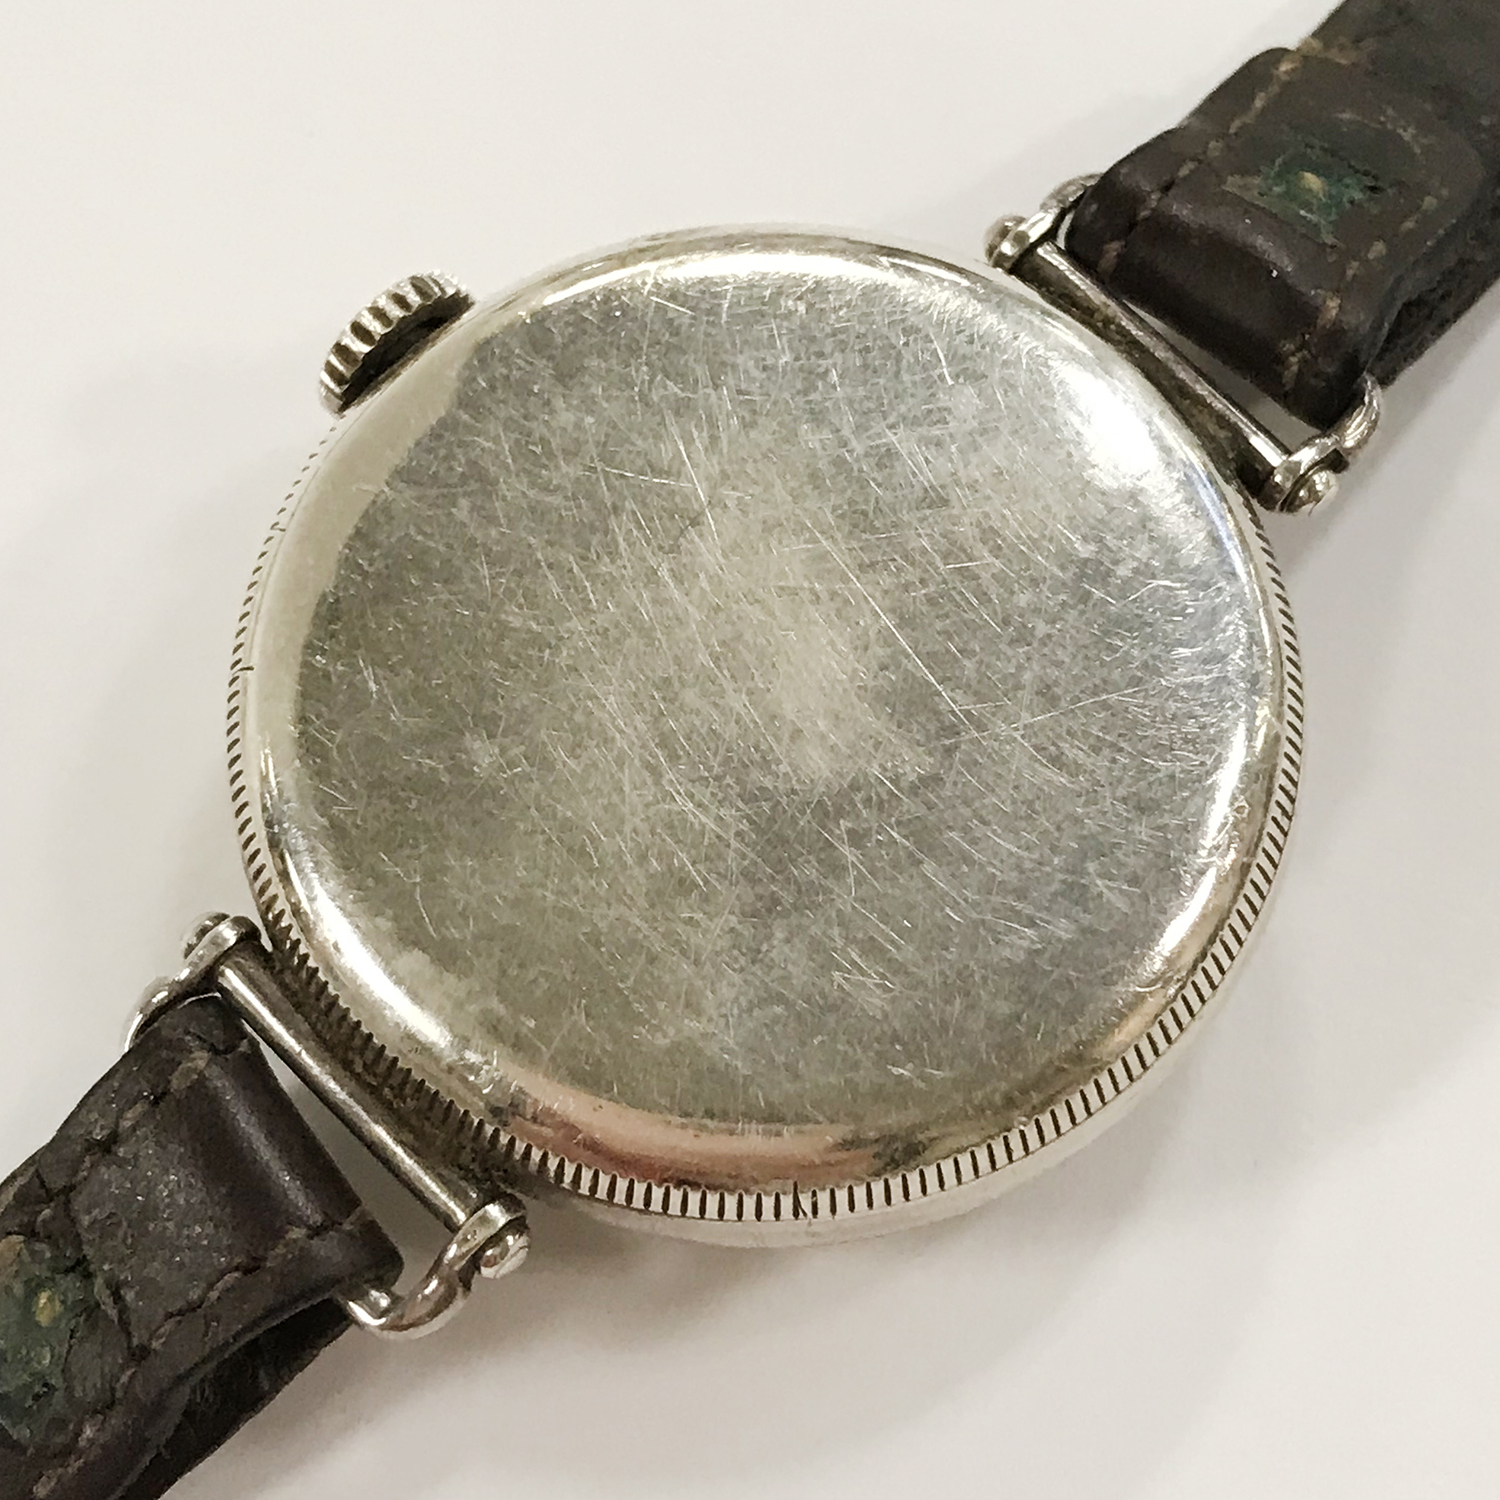 LONGINES WRISTWATCH IN SILVER - Image 3 of 3